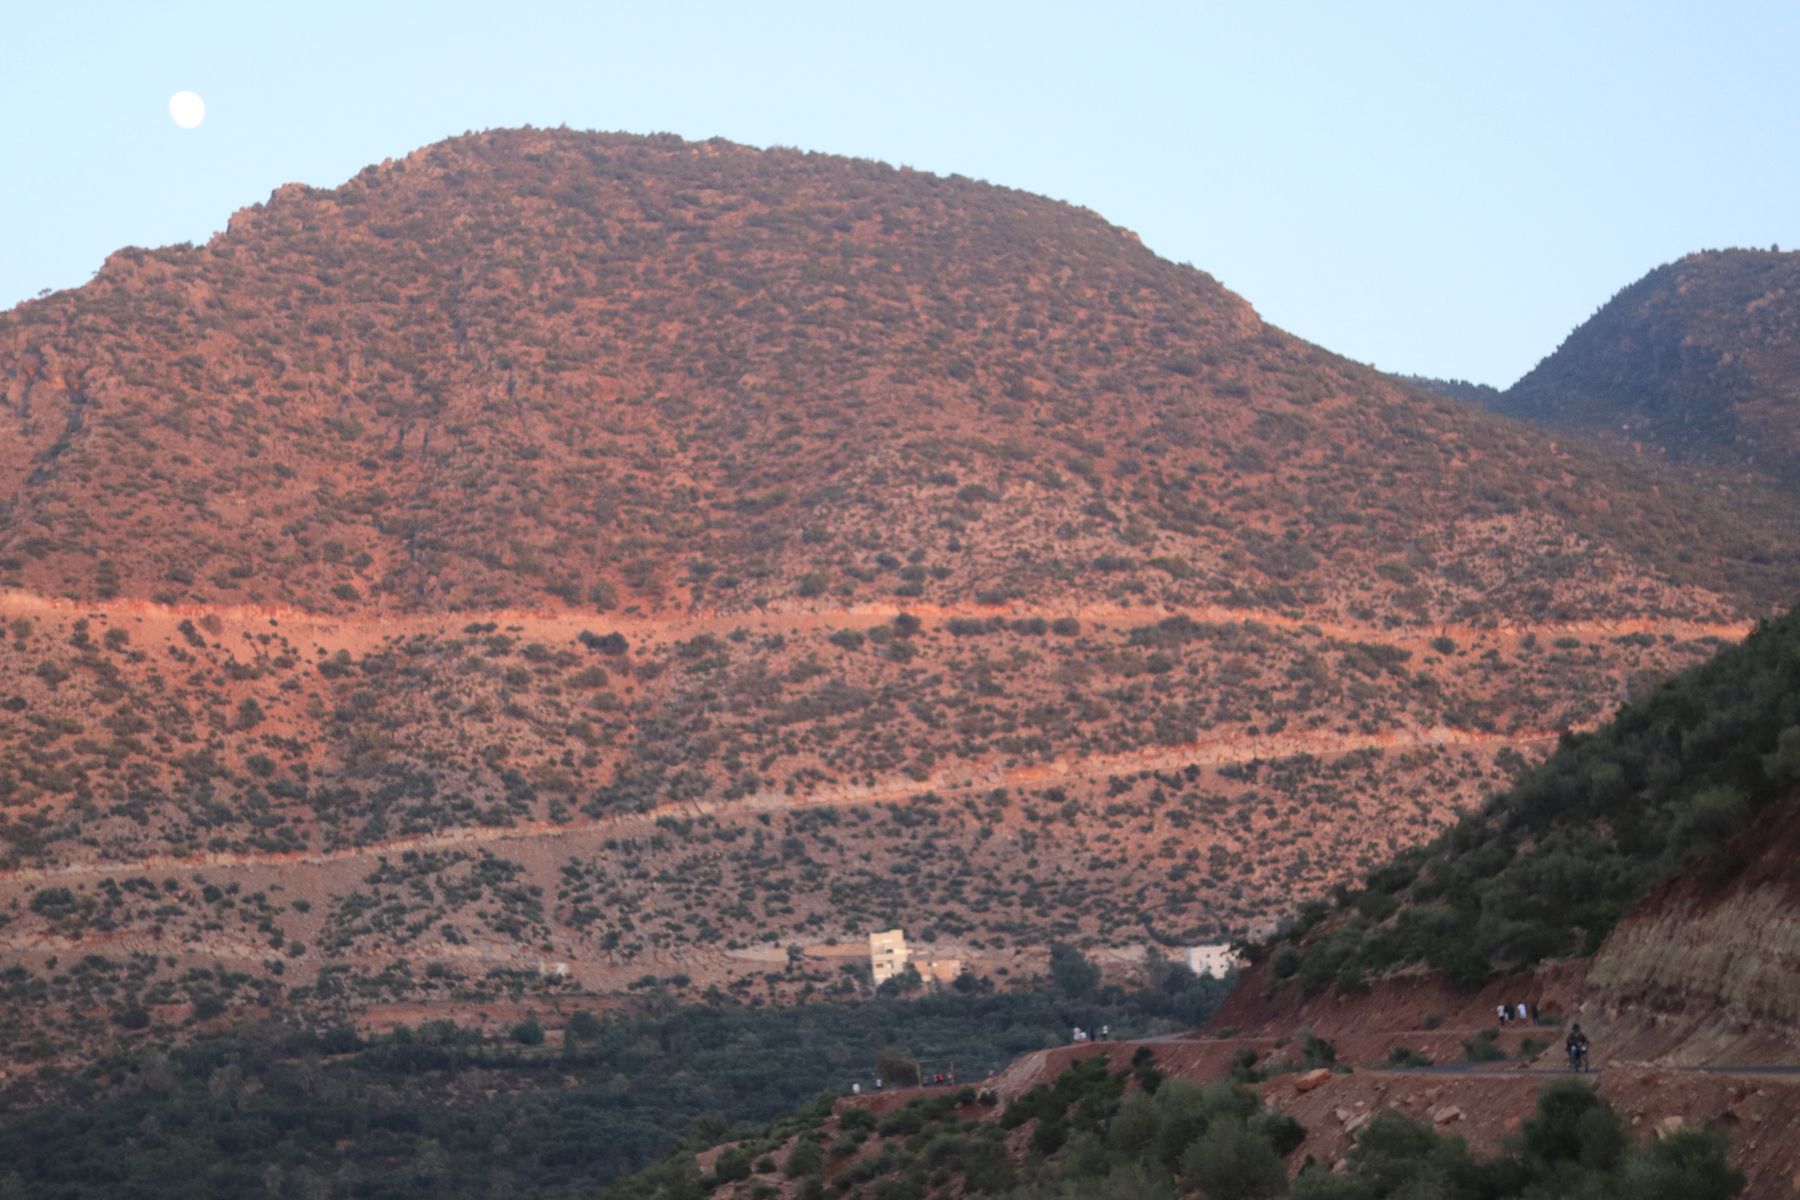 The red hill and watchful moon